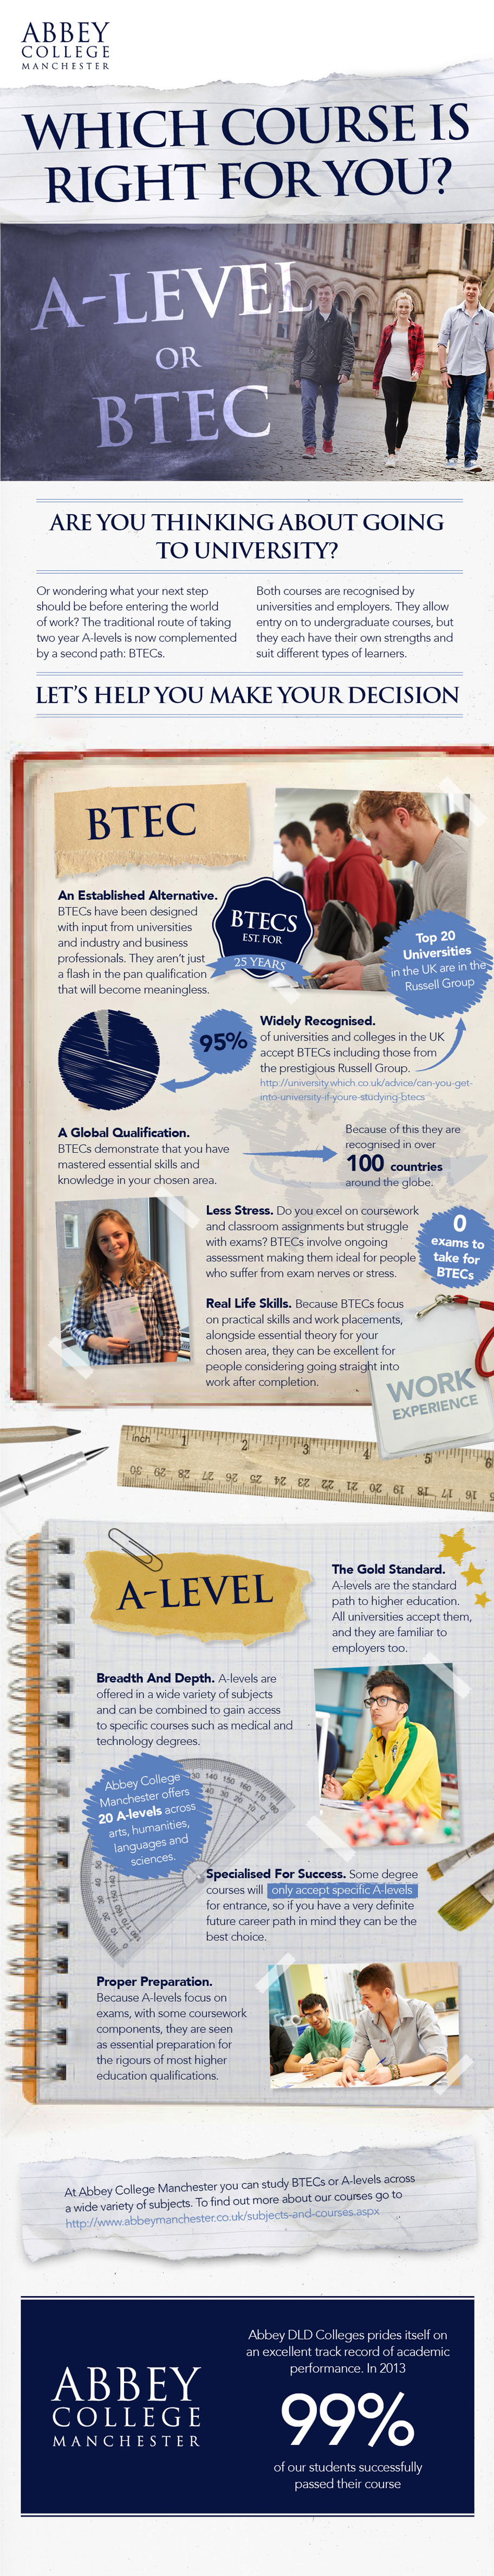 abbey college infographic design